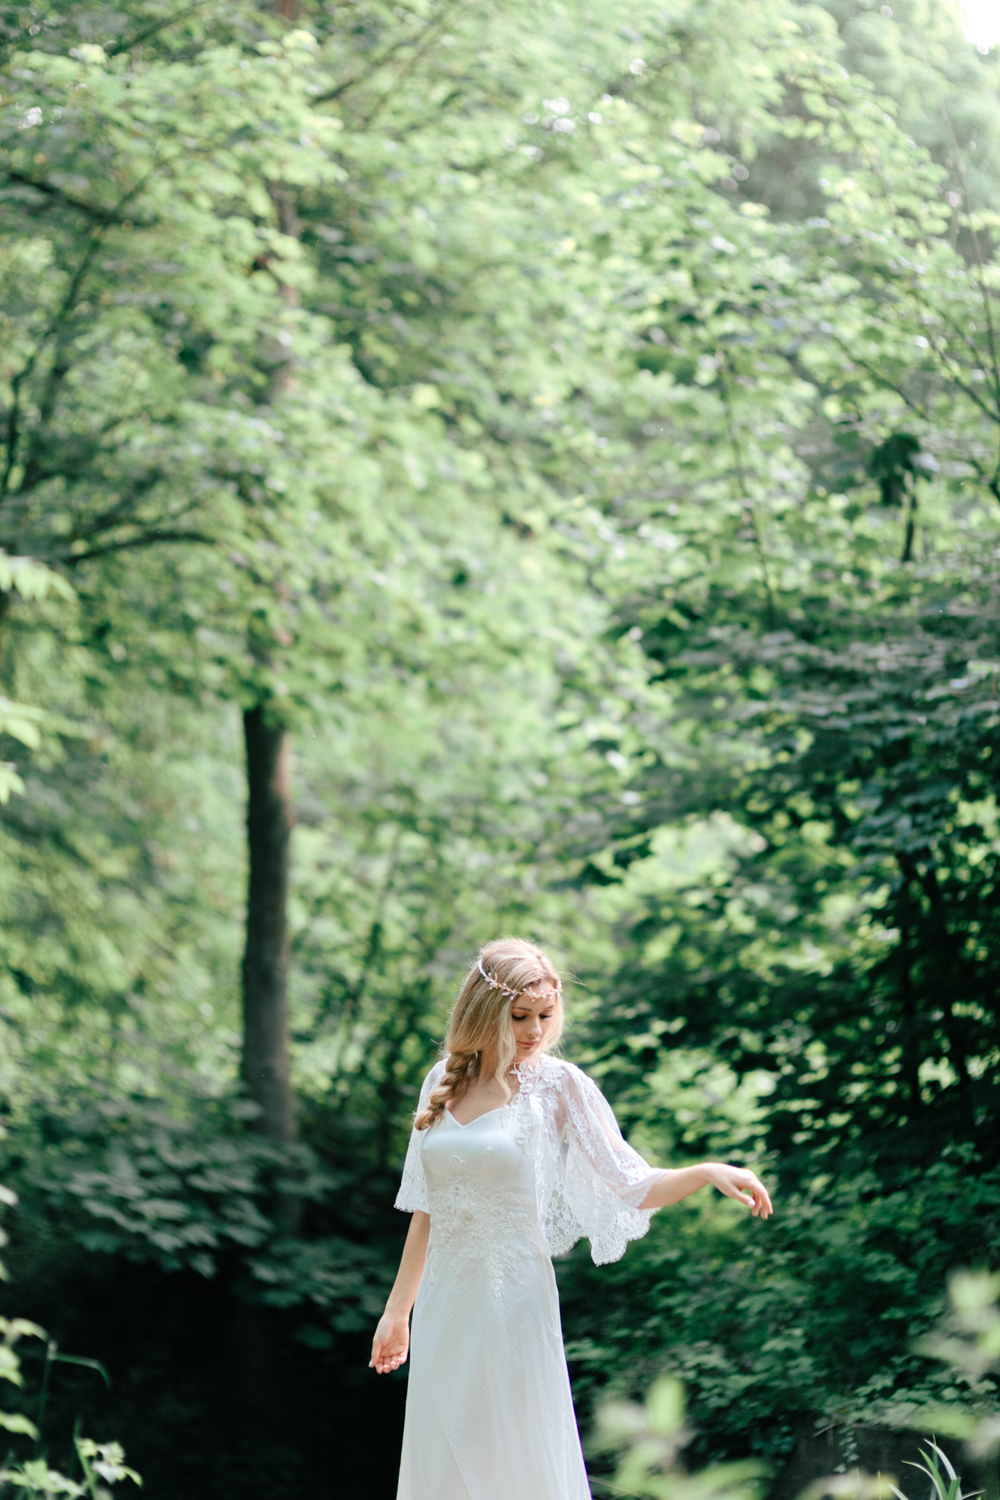 hannahk-photography-bohemian-bridal-inspiration-shoot-13